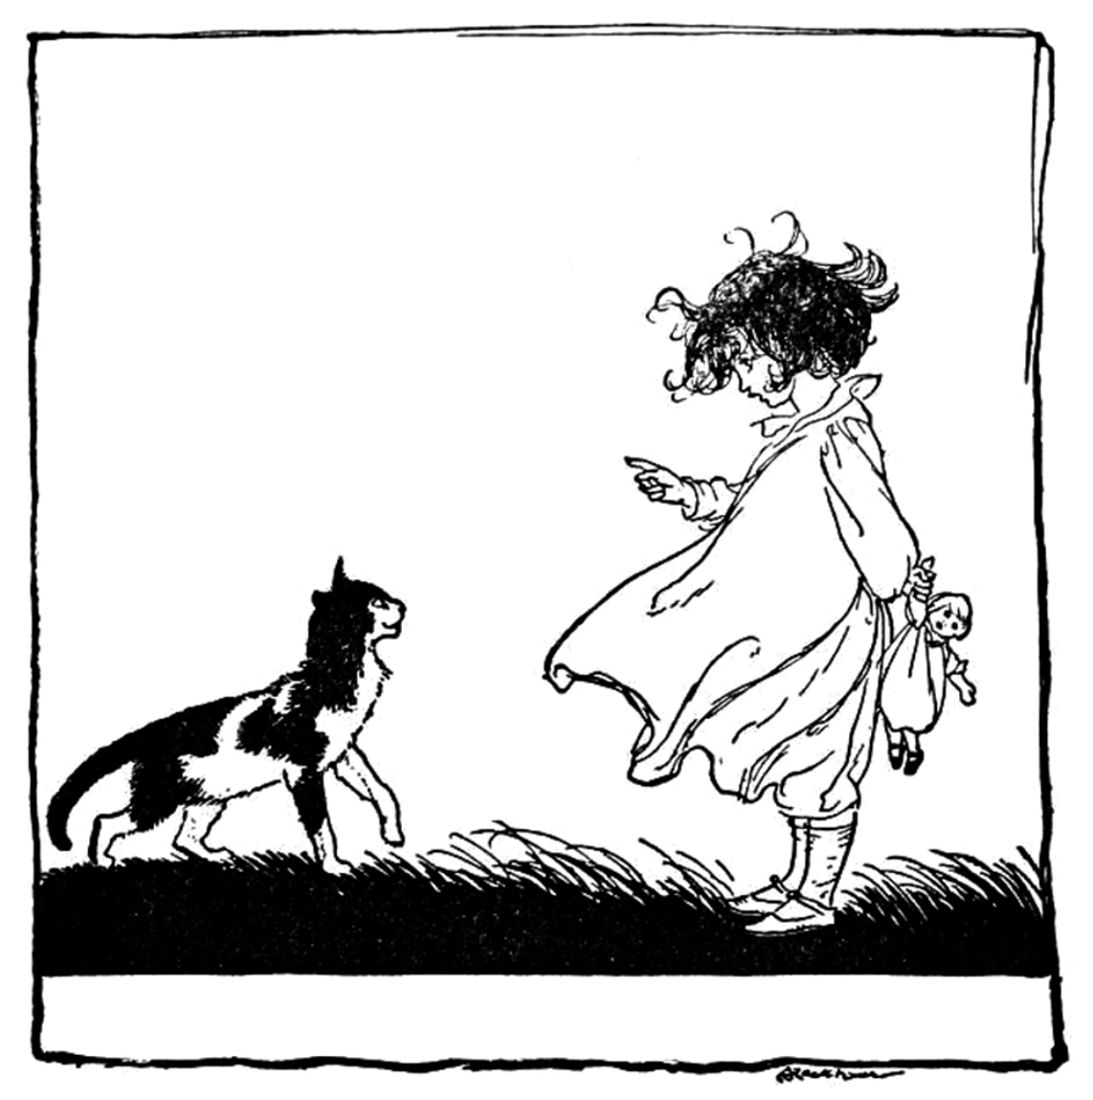 Art By Arthur Rackham From The Book Old Nursery